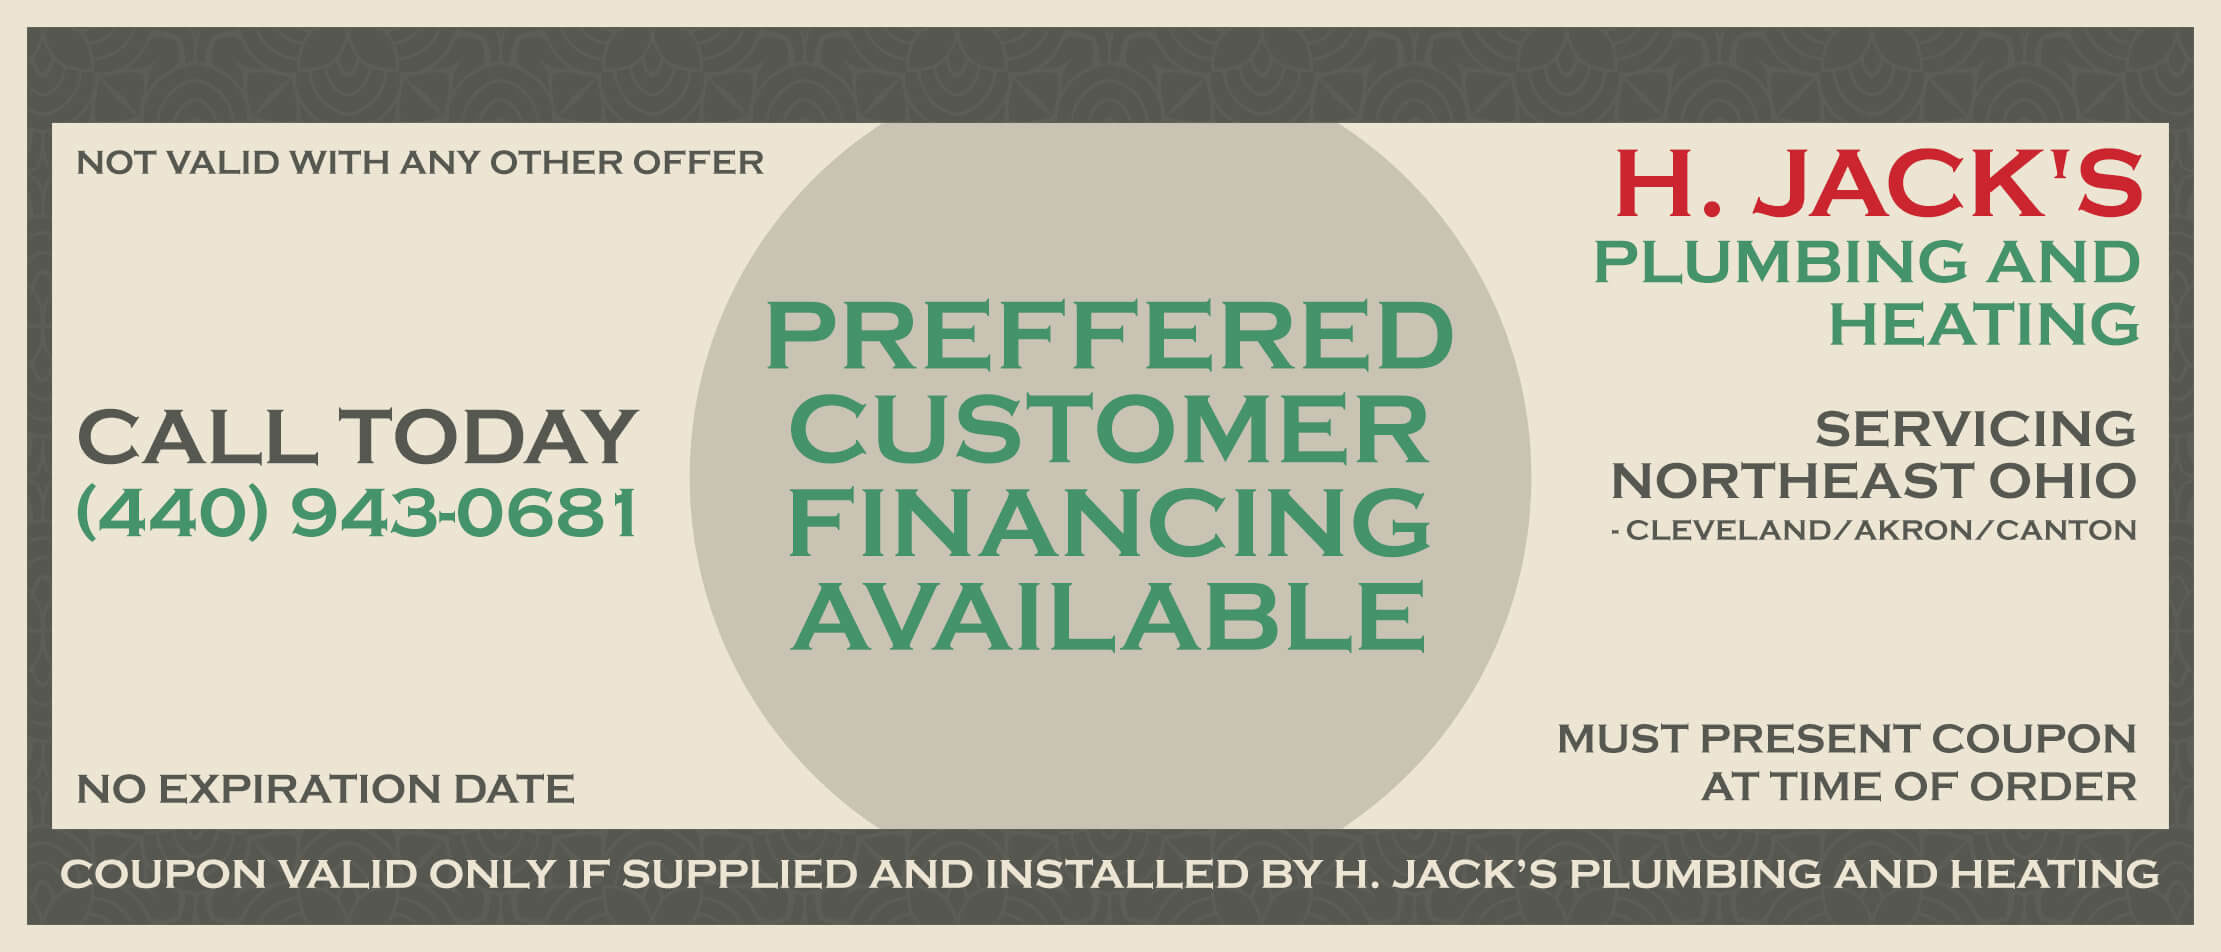 Preffered Customer Financing Available